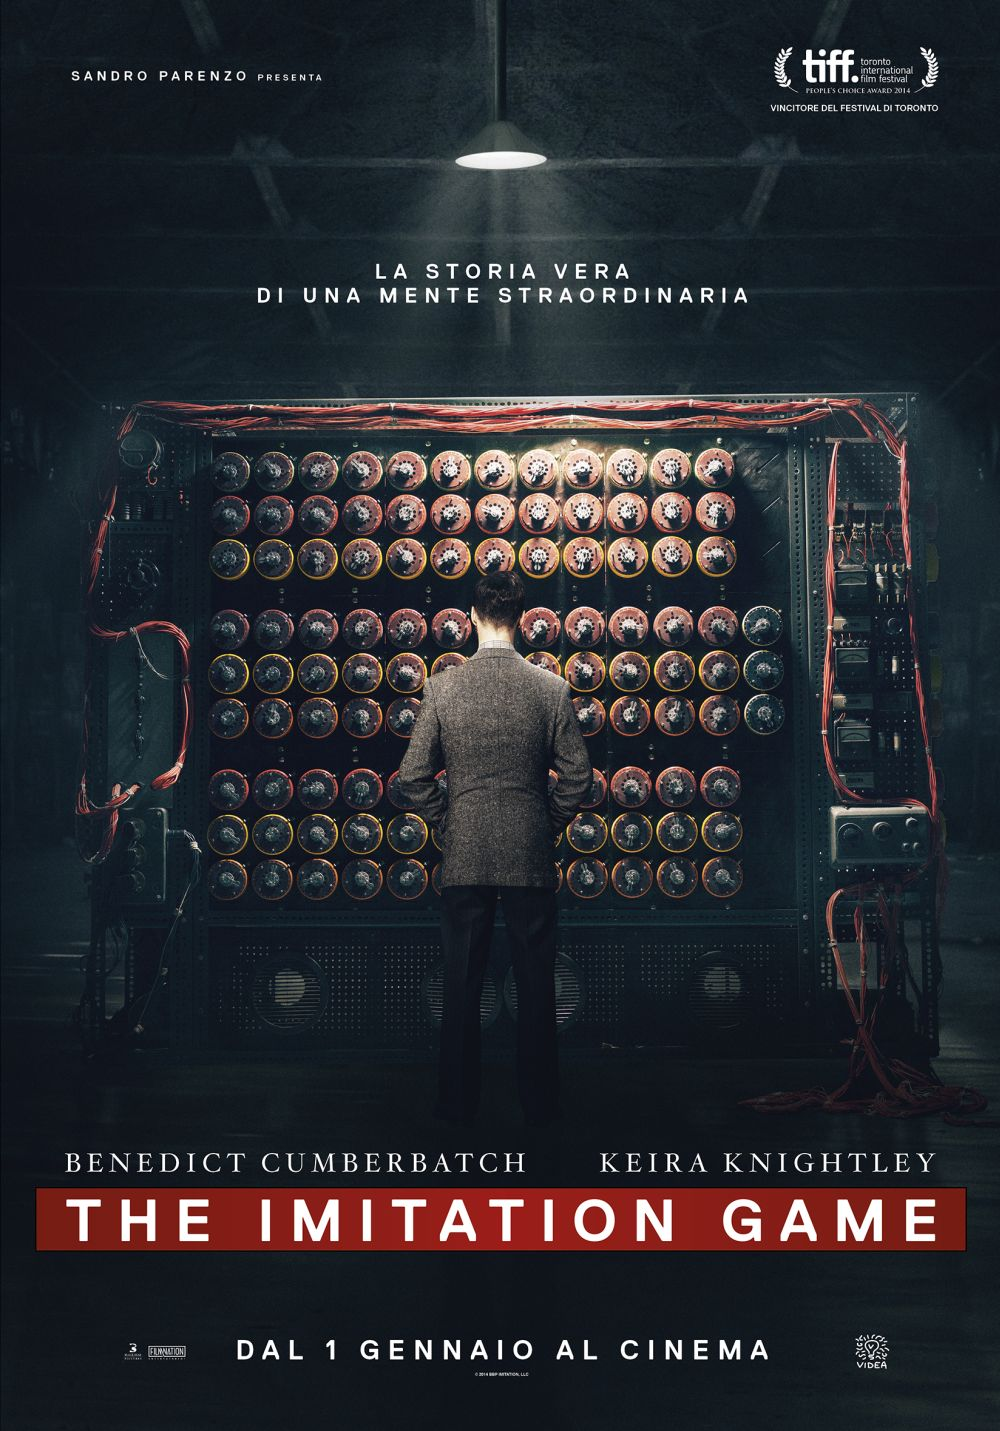 Locandina italiana di The Imitation Game